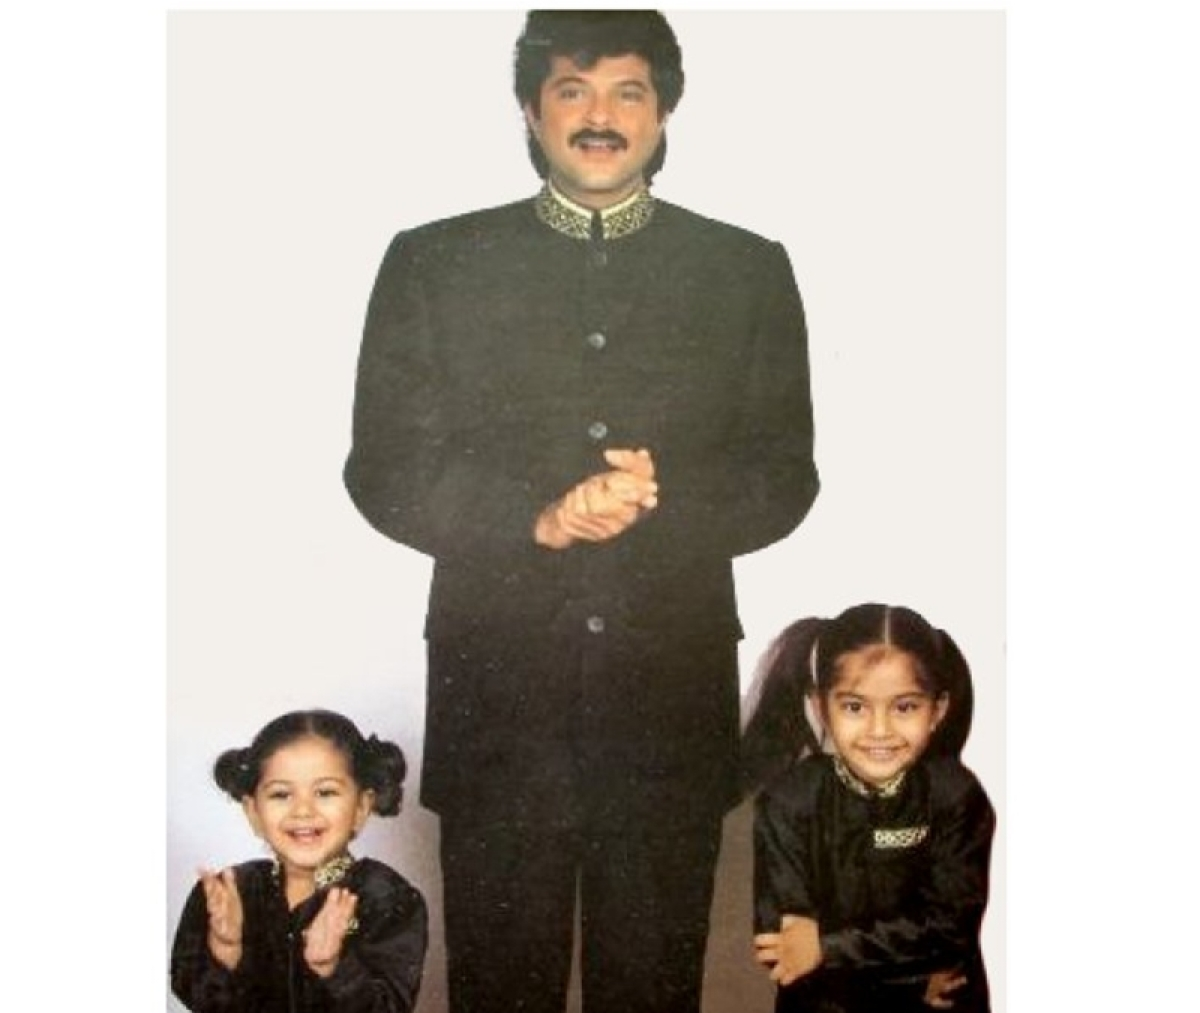 Throwback Thursday: Sonam Kapoor shyly posing with daddy Anil and sister Rhea will make your day